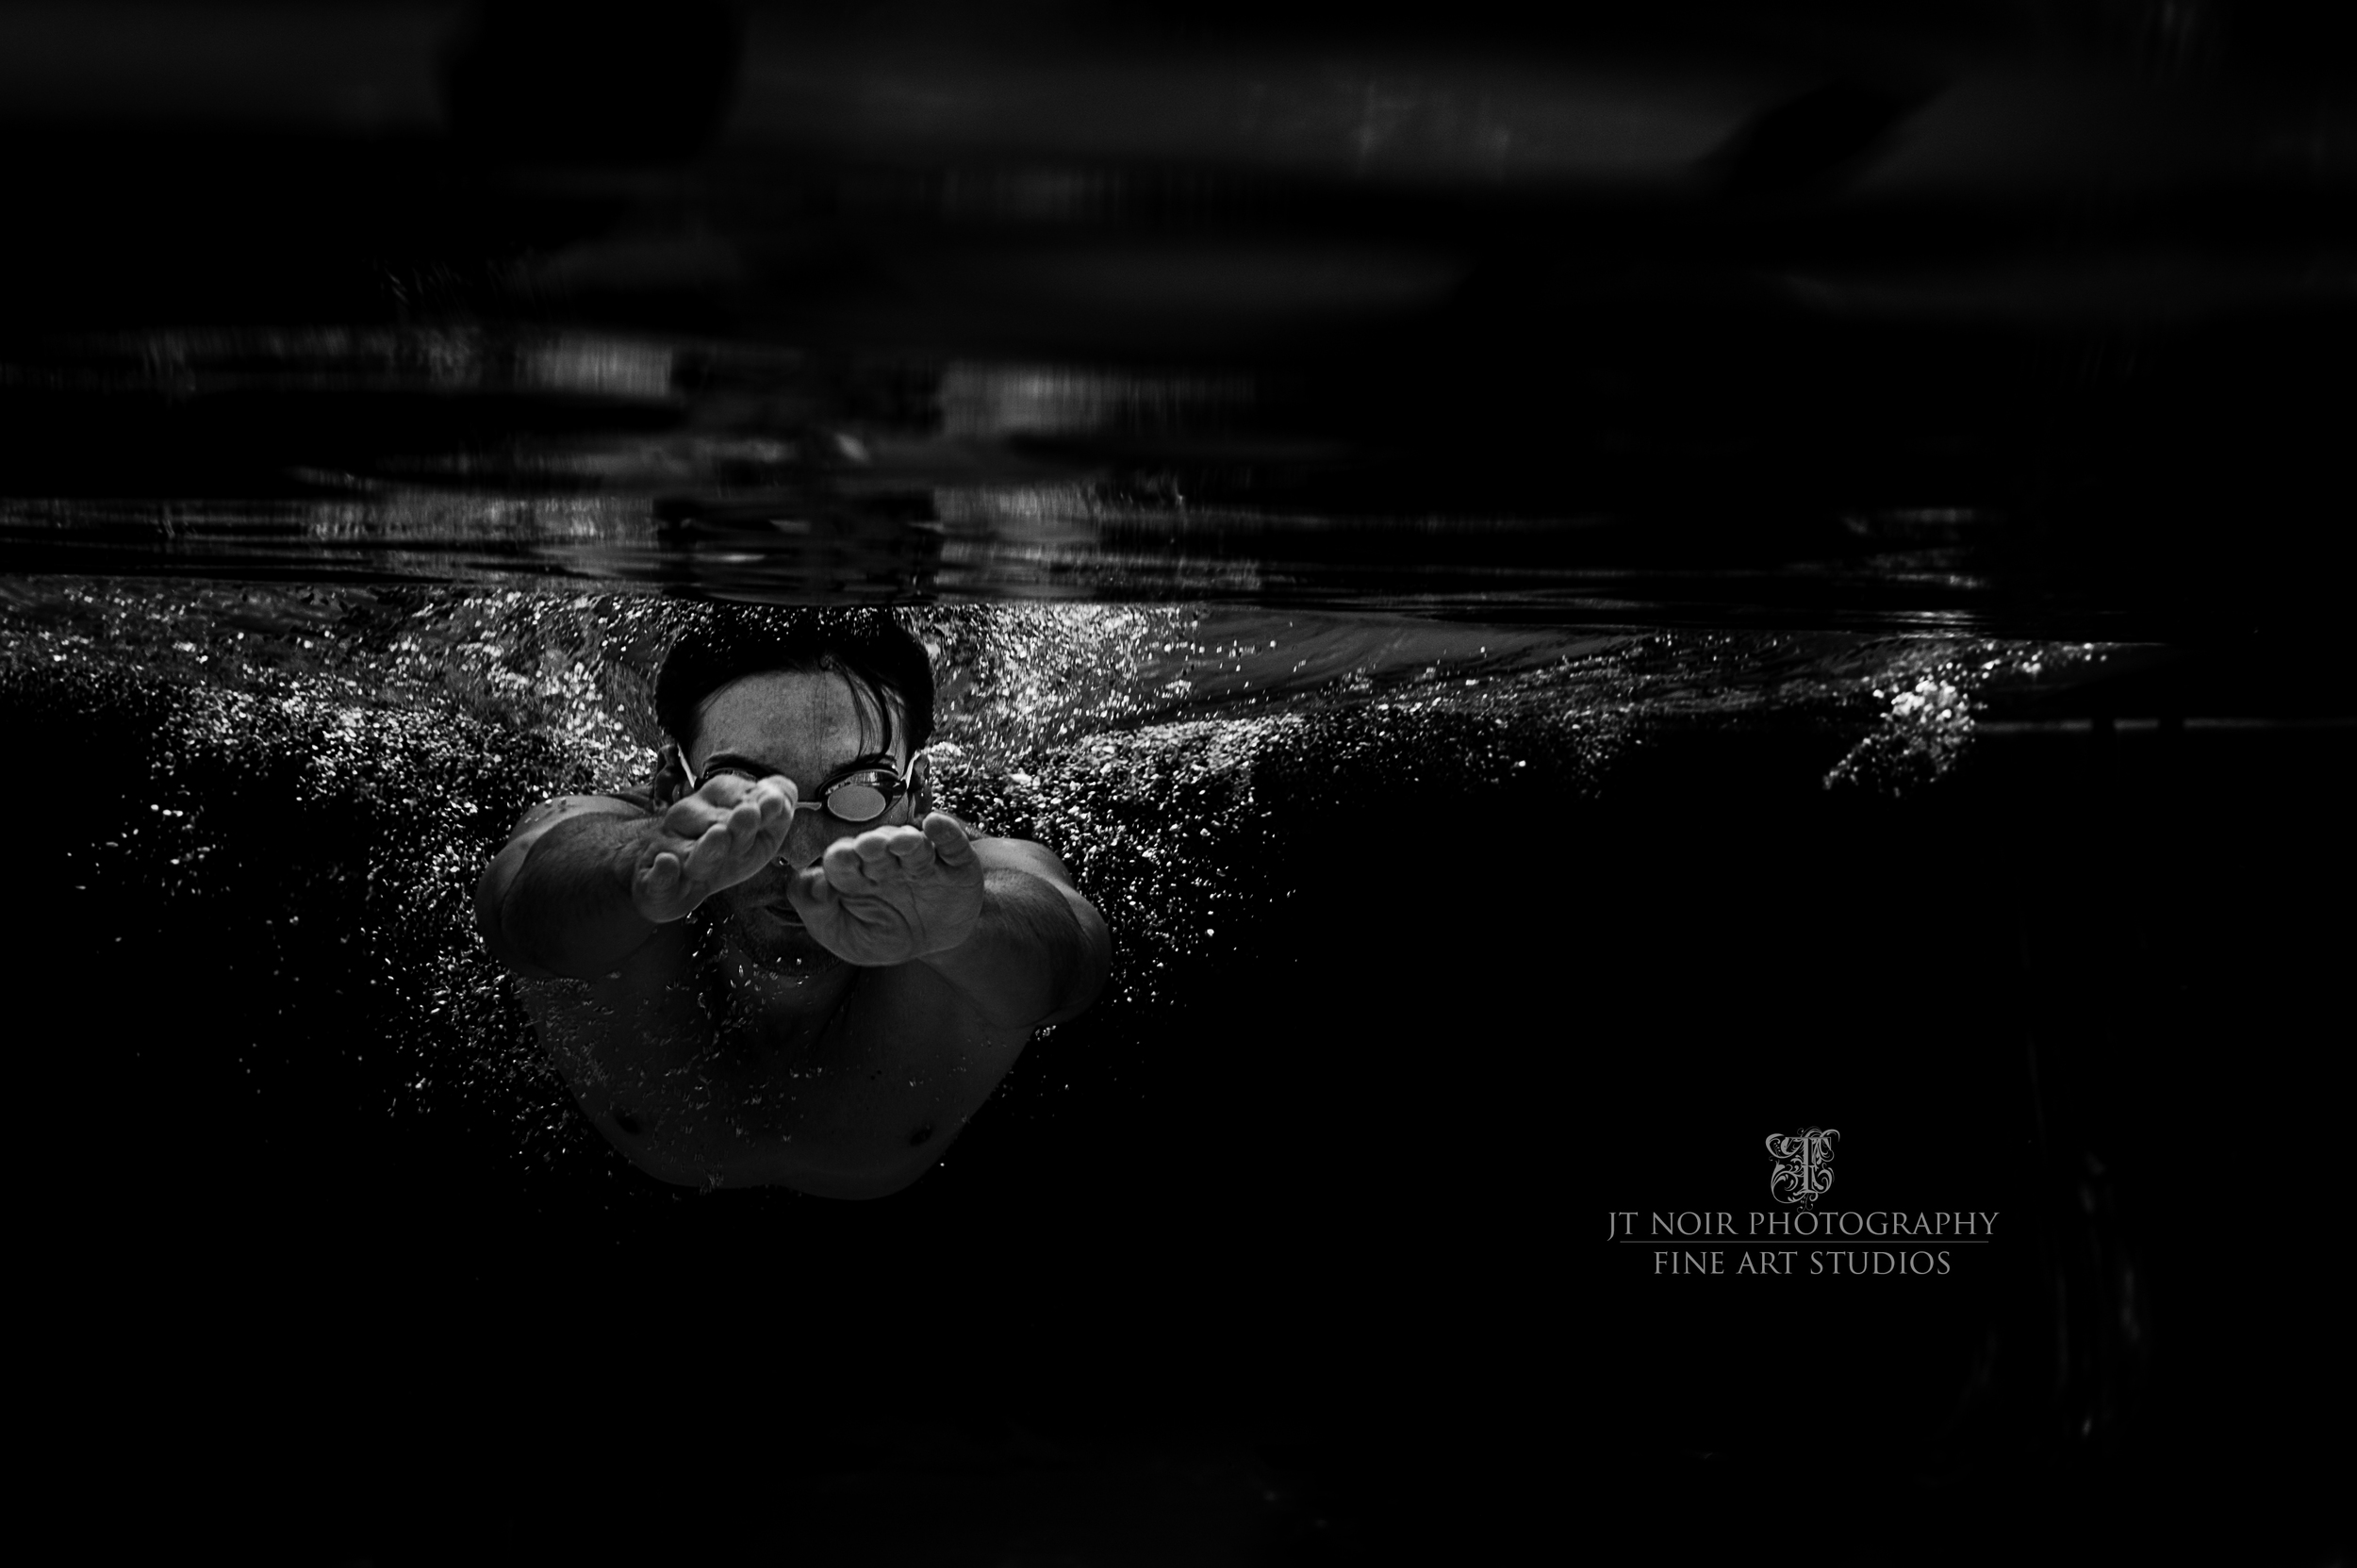 JTNoir_Underwater_mens_2__swimming_Photography_Palatka_underwaterphotography_7_2015_Flying.jpg